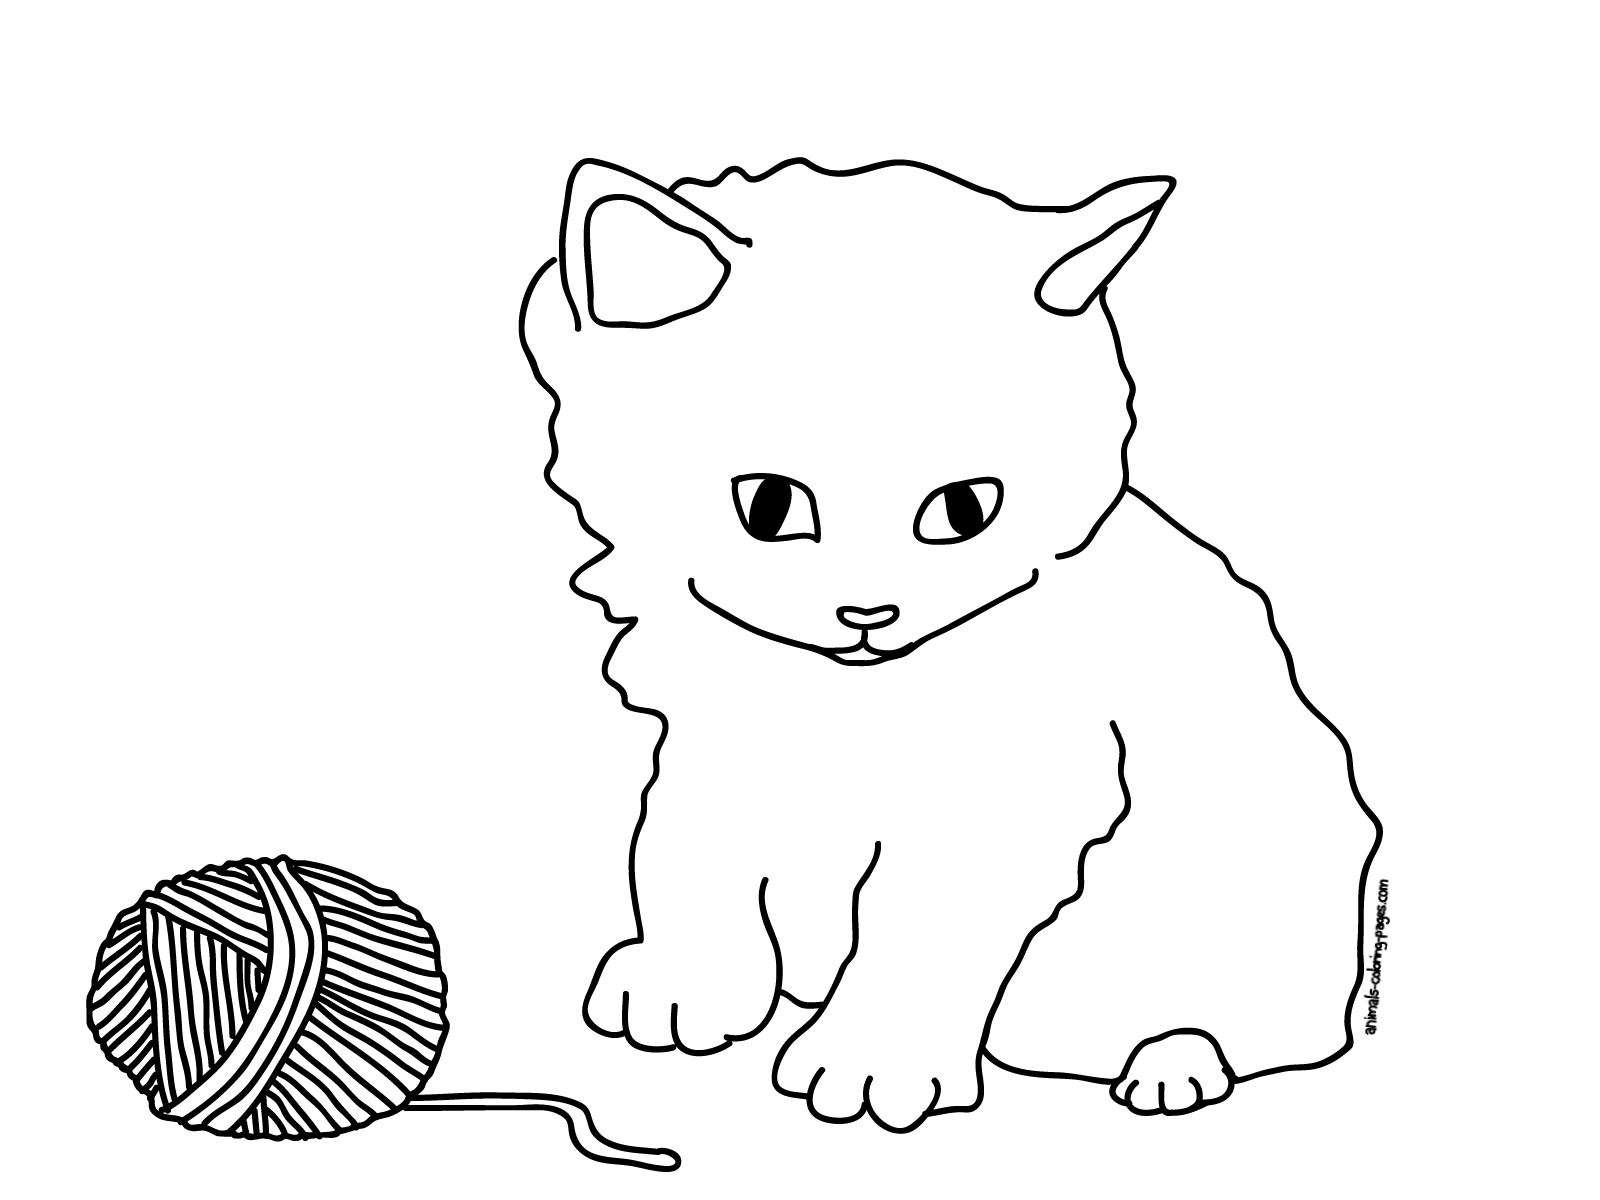 cat coloring book kitty cat coloring pages coloring pages for kids cat coloring book